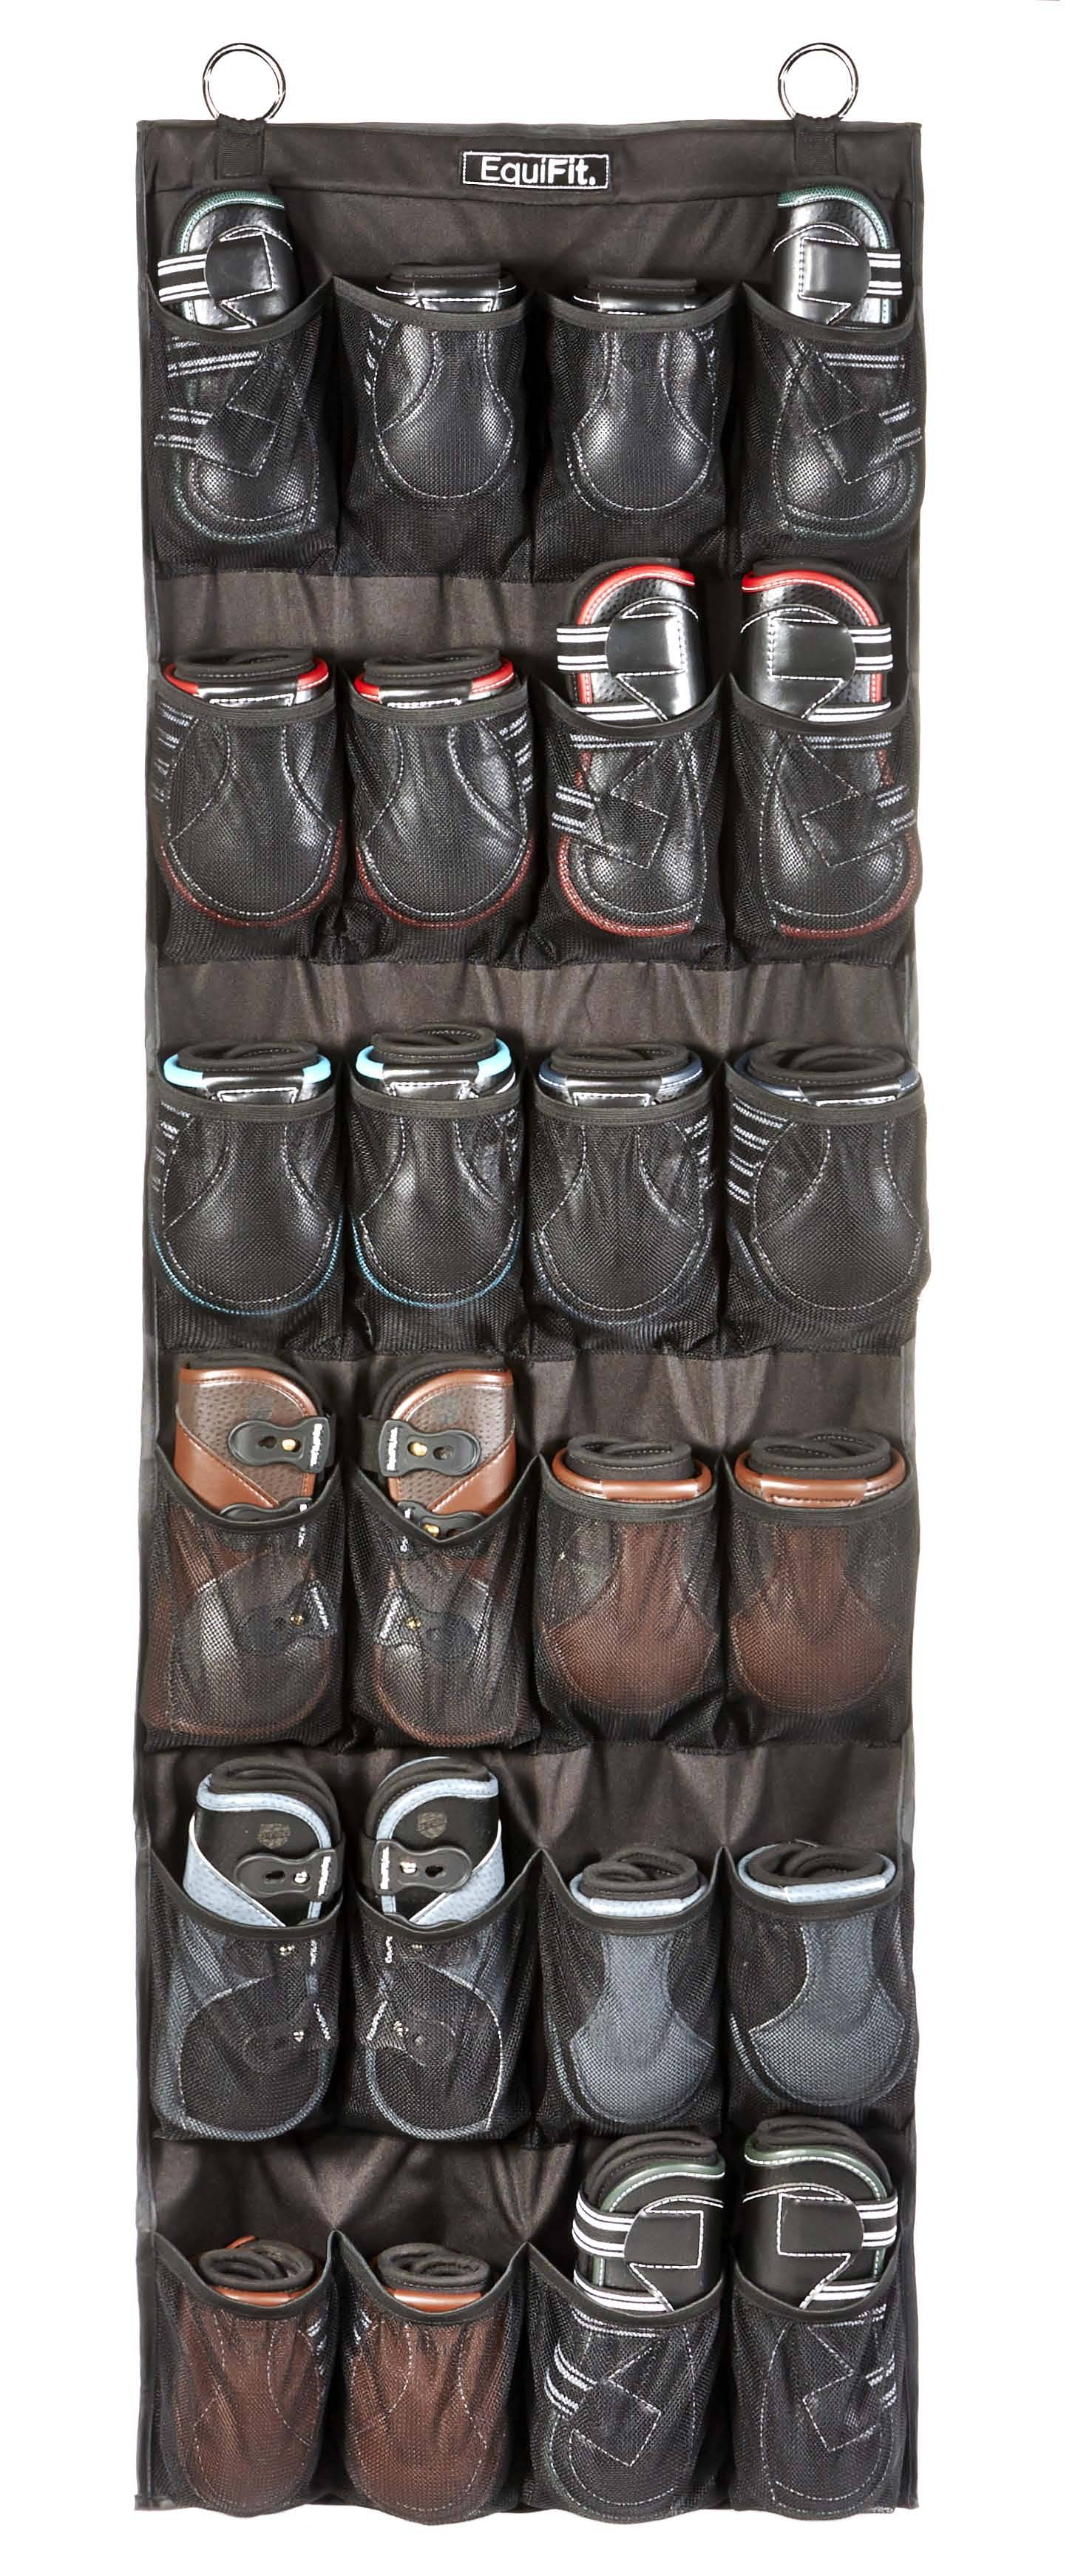 Equifit Hanging Boot Organizer - 24 Pockets